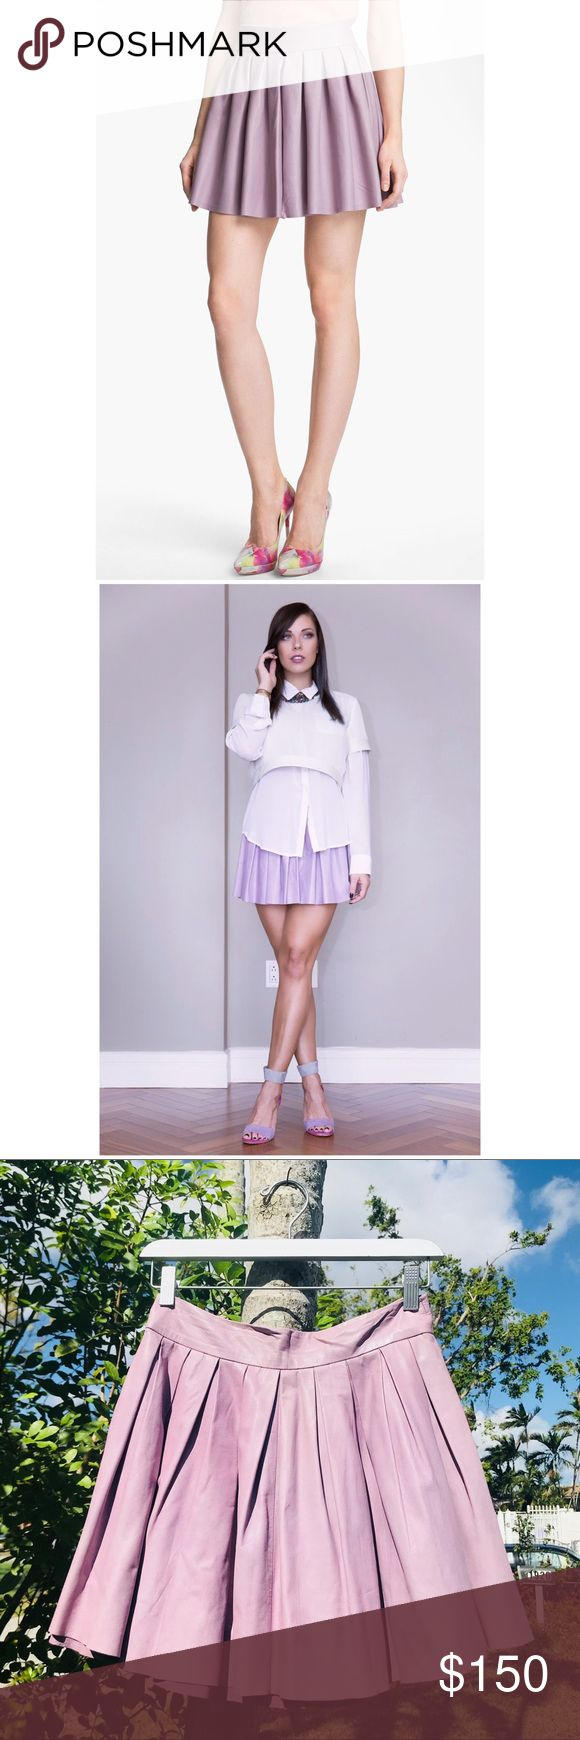 💜ALICE & OLIVIA BoxPleat Leather Skirt Purple US6 Ok so if this guy doesn't sell, I won't be mad at all 😂 love love love this skirt!  Gorgeous dusty purple color, like butter leather, absolutely flattering on everyone 💜🔮💜 GOOD used condition, some staining on the inside of the skirt- as well as a small patch of rust staining near the back zipper (please see all pics!) Selling my WHOLE closet to lead a mobile lifestyle soon with the boyfriend 💖 Make an Offer‼️Poshmark rules only‼️ ❌ no…